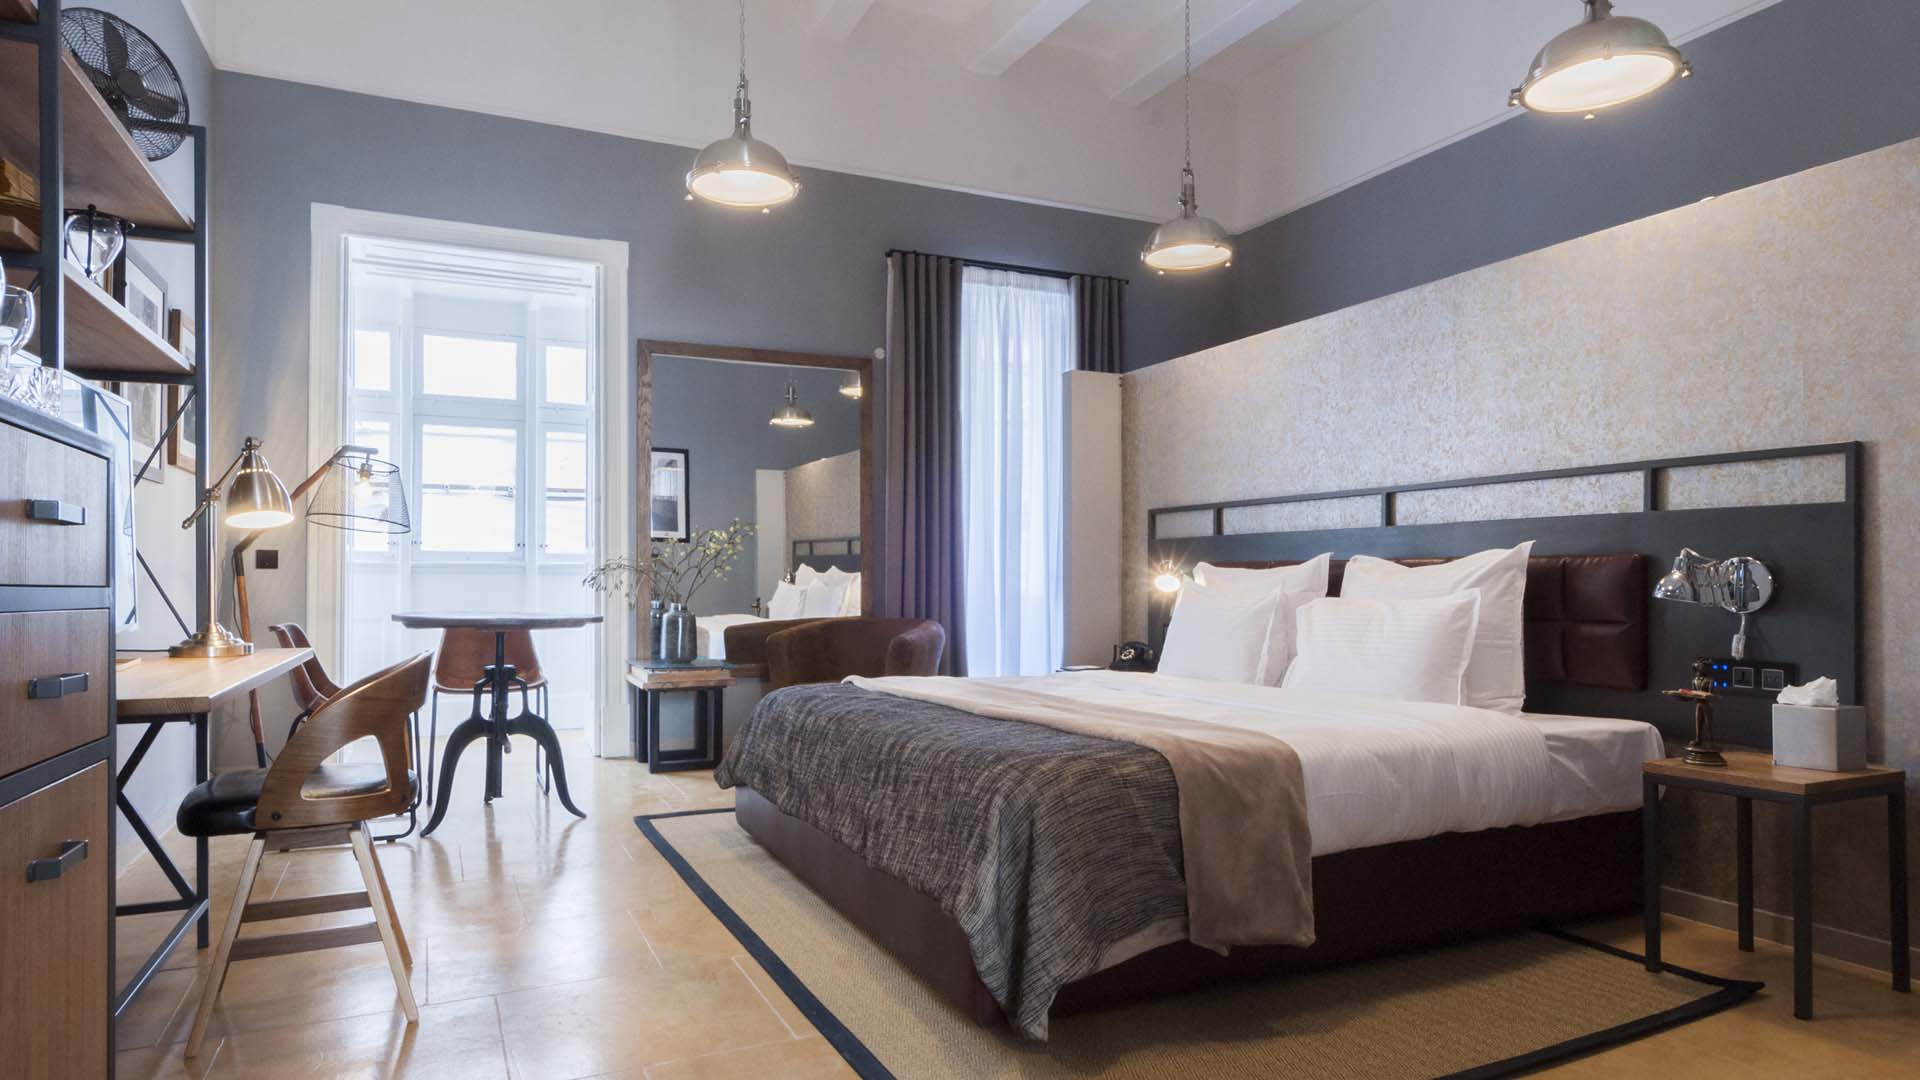 Book a room directly with us at The Saint John and Save 10%